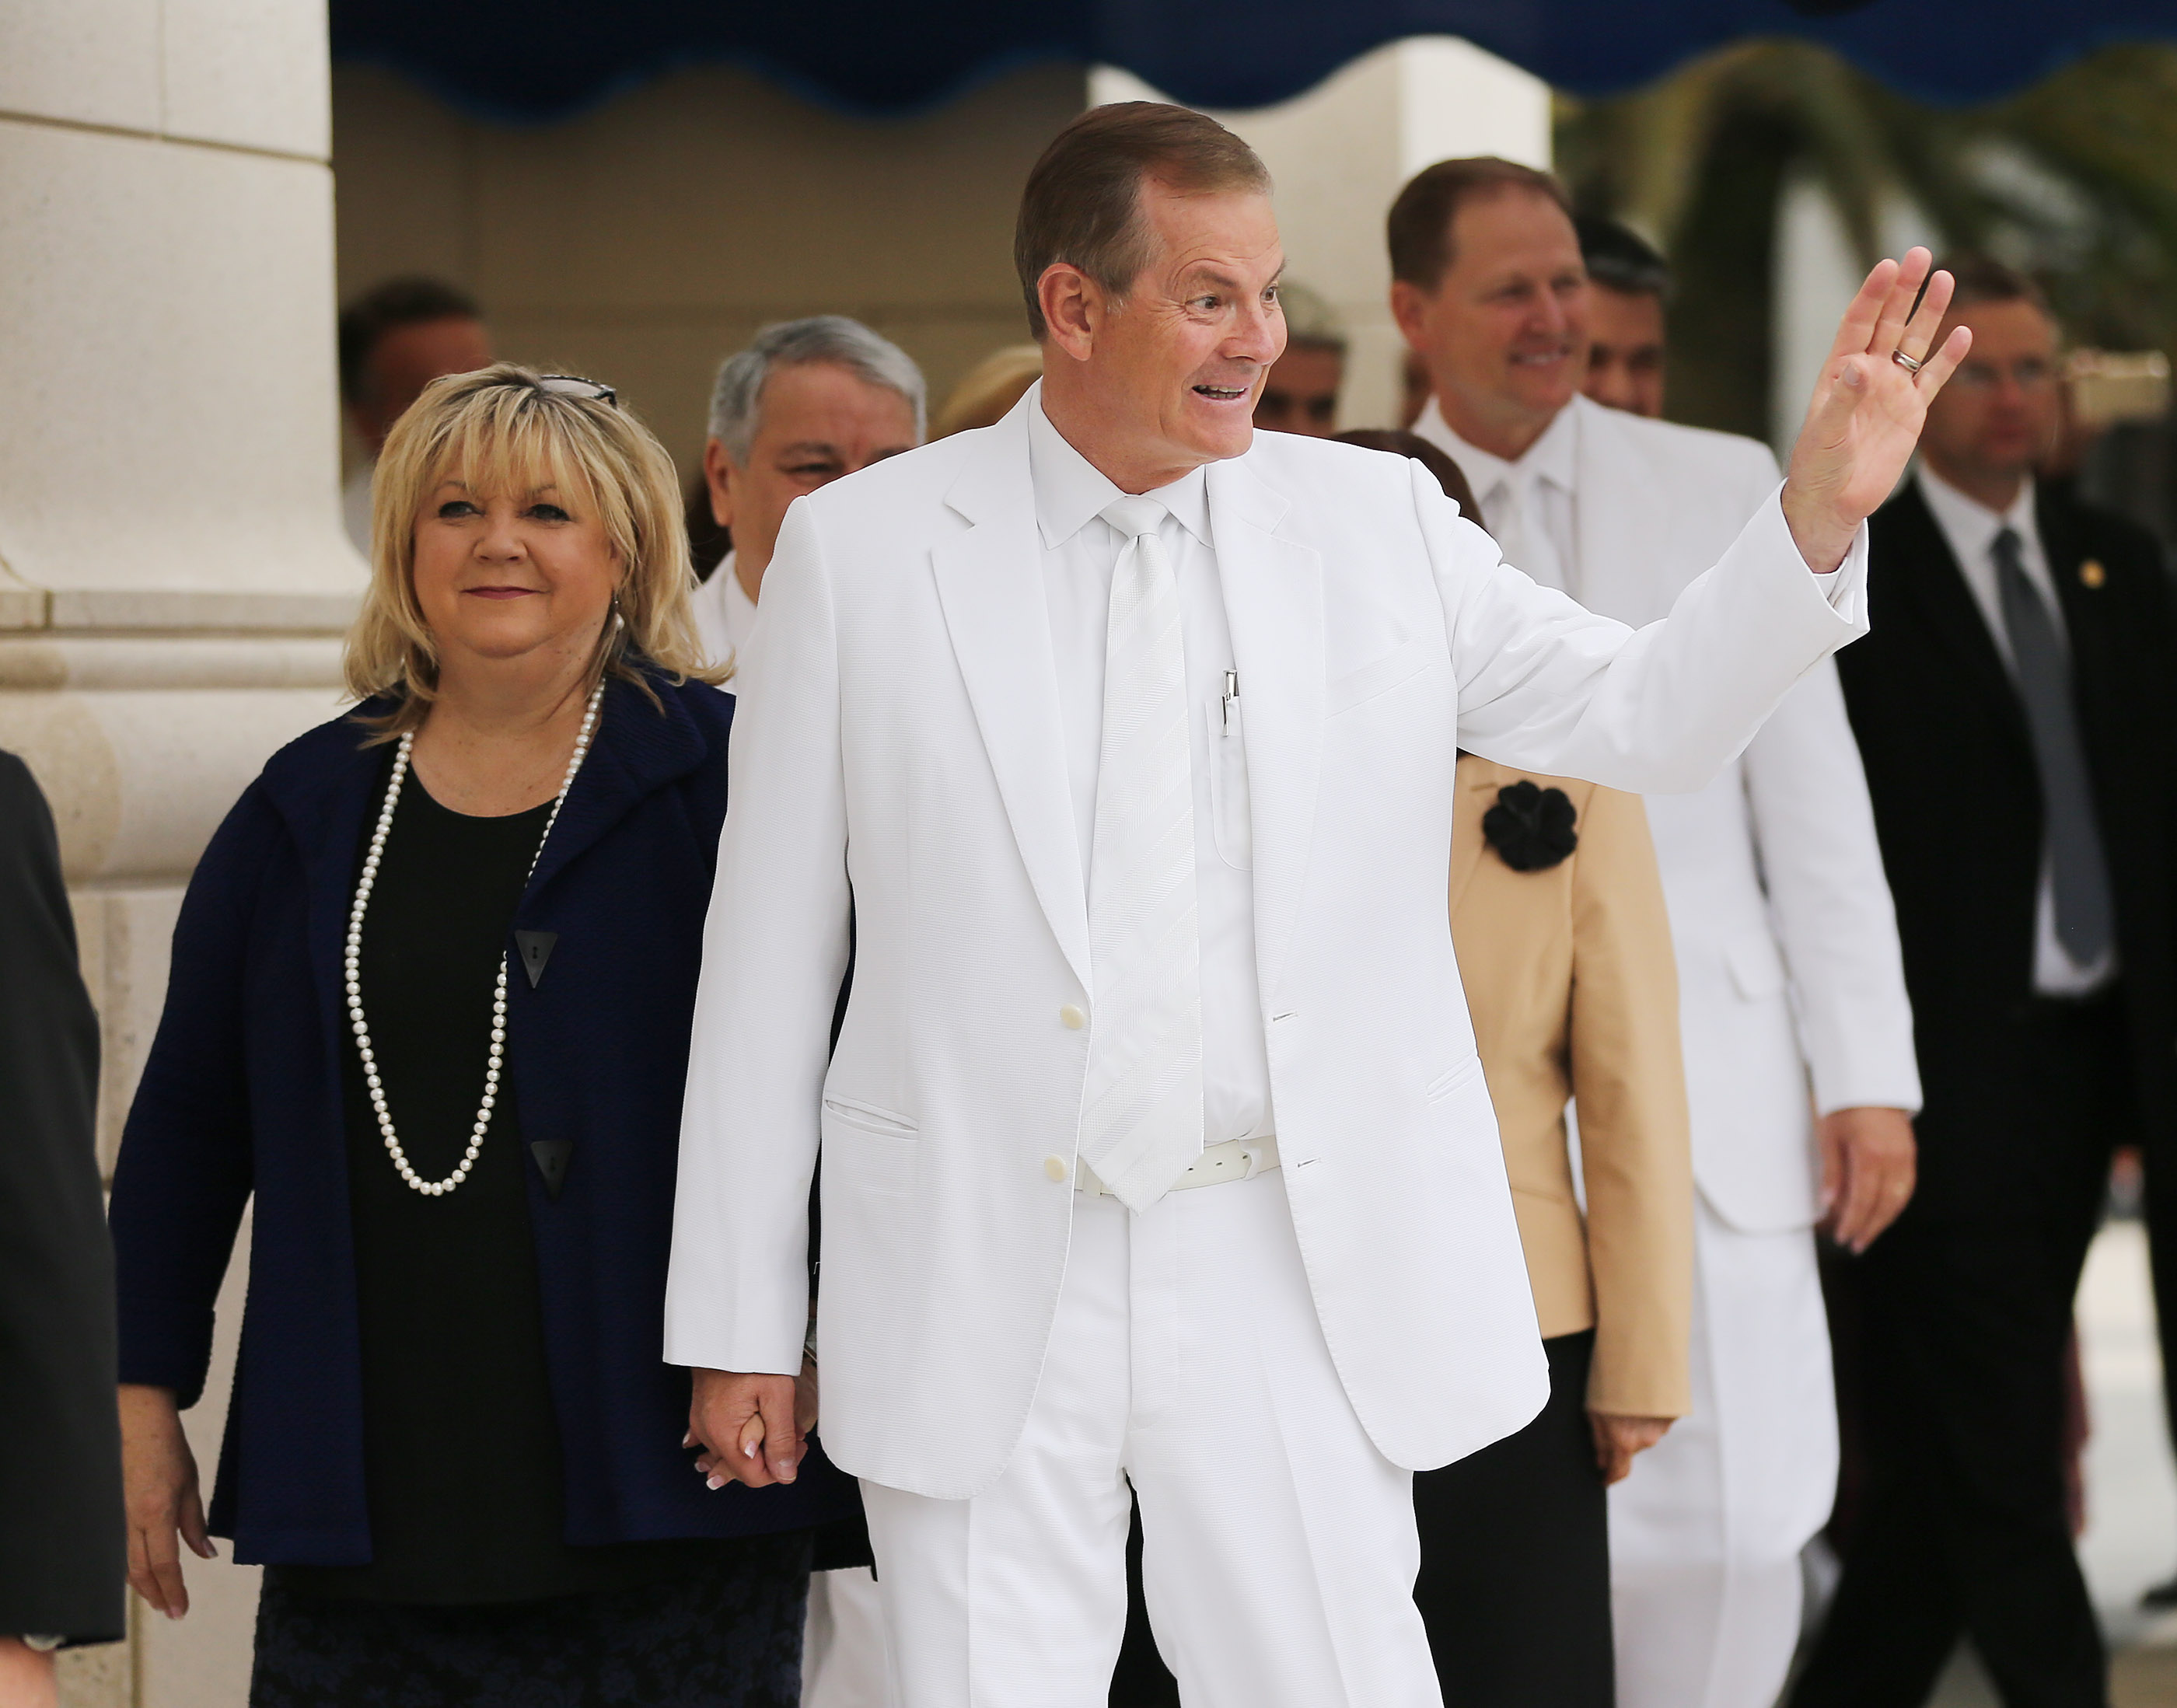 Elder Gary E. Stevenson of The Church of Jesus Christ of Latter-day Saints' Quorum of the Twelve Apostles — joined by his wife, Sister Lesa Stevenson — waves while outside the Concepción Chile Temple for the cornerstone ceremony. The temple was dedicated Sunday, Oct. 28, 2018, in Concepcion, Chile.